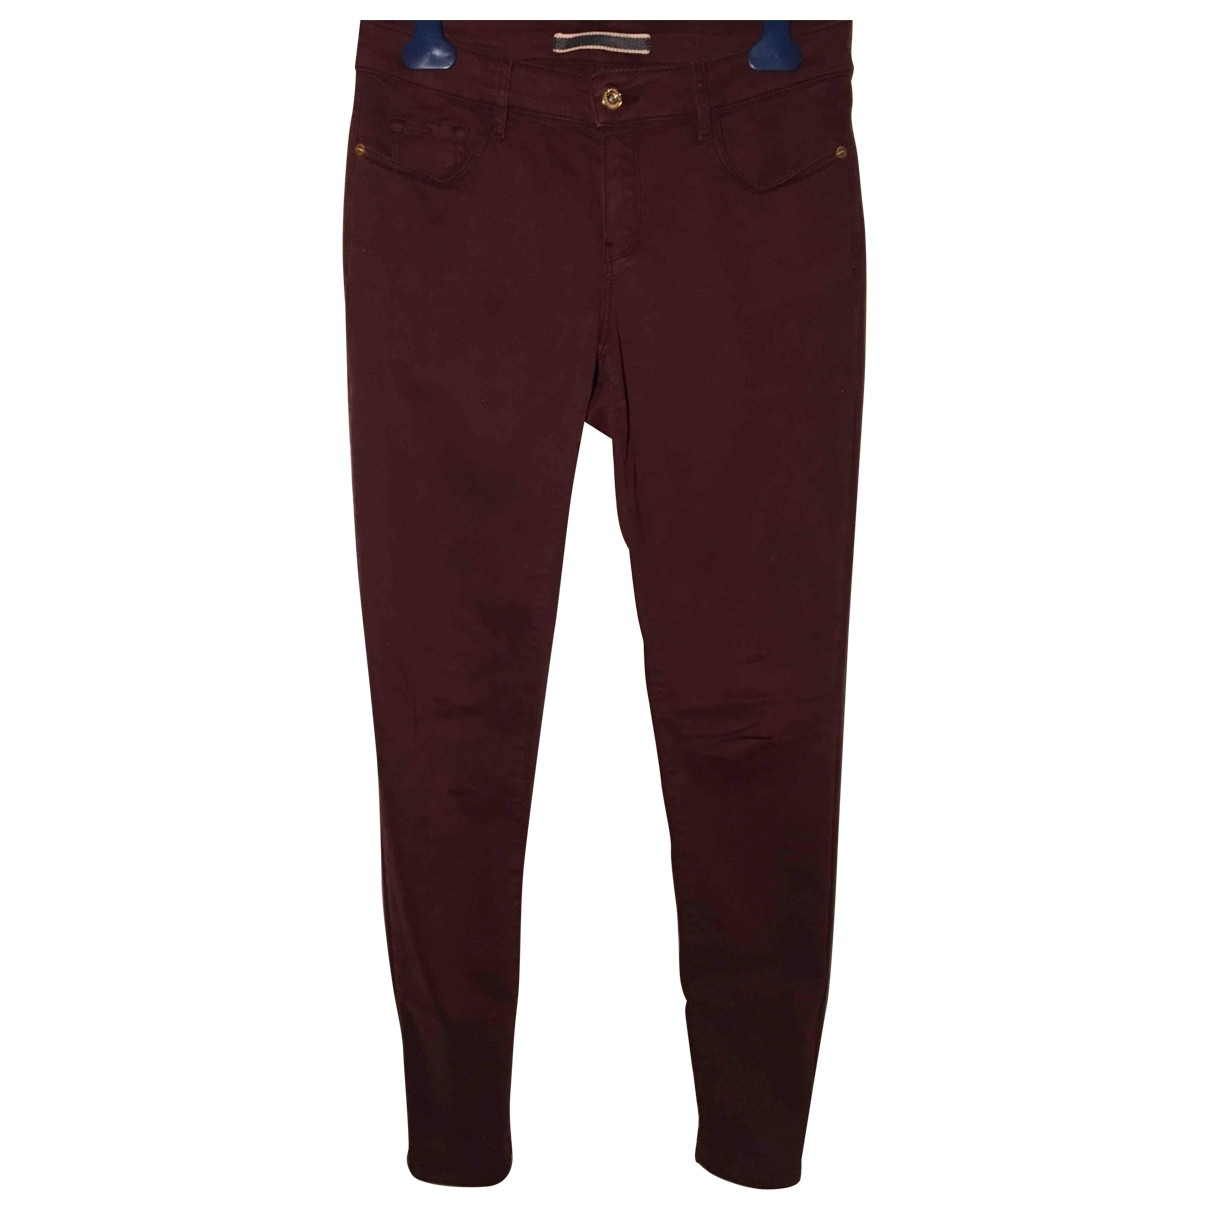 Massimo Dutti \N Burgundy Cotton Trousers for Women 6 US